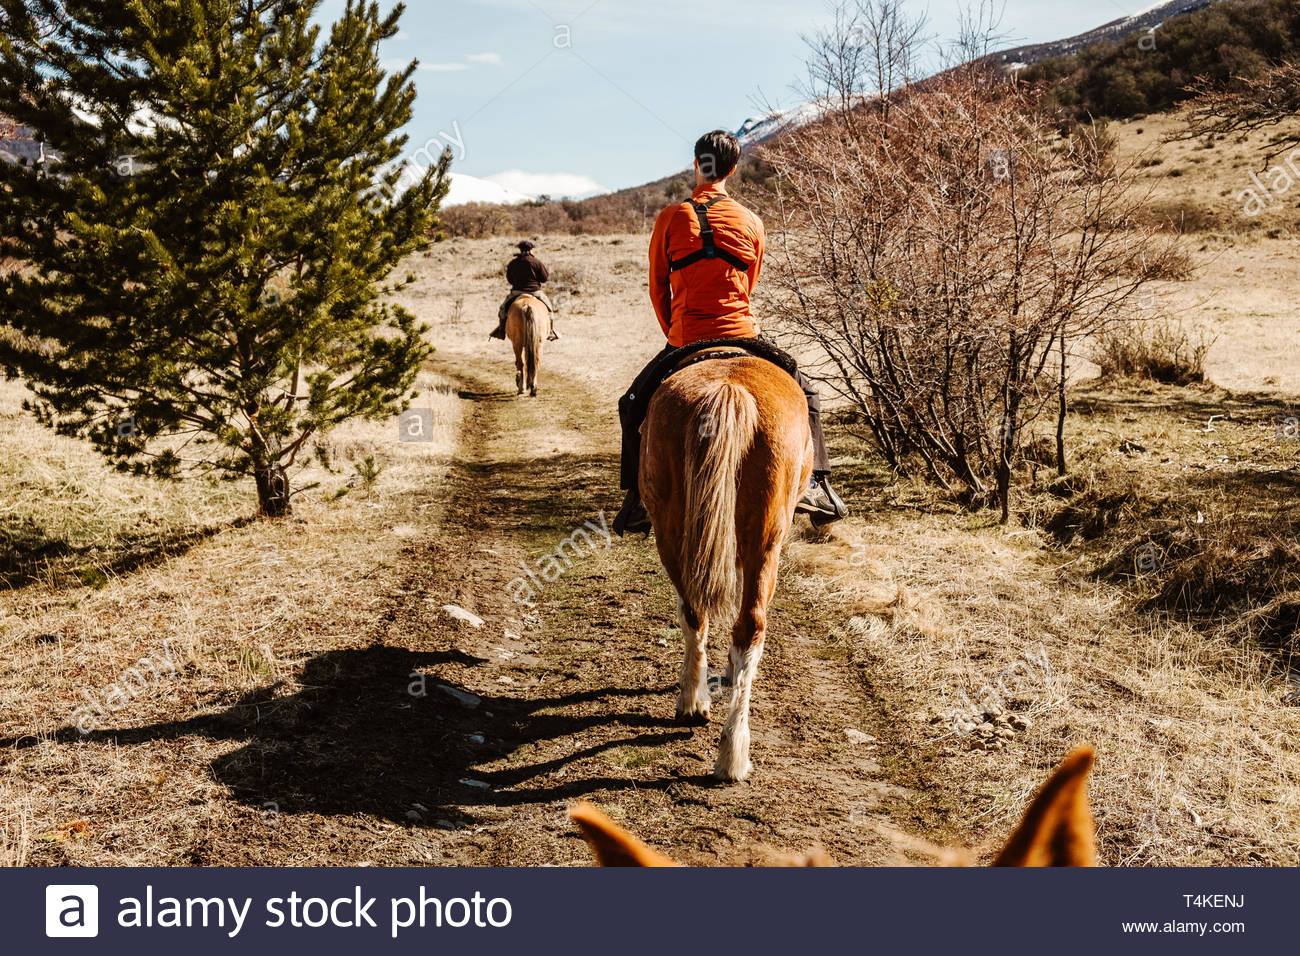 person raid on horse - Stock Image